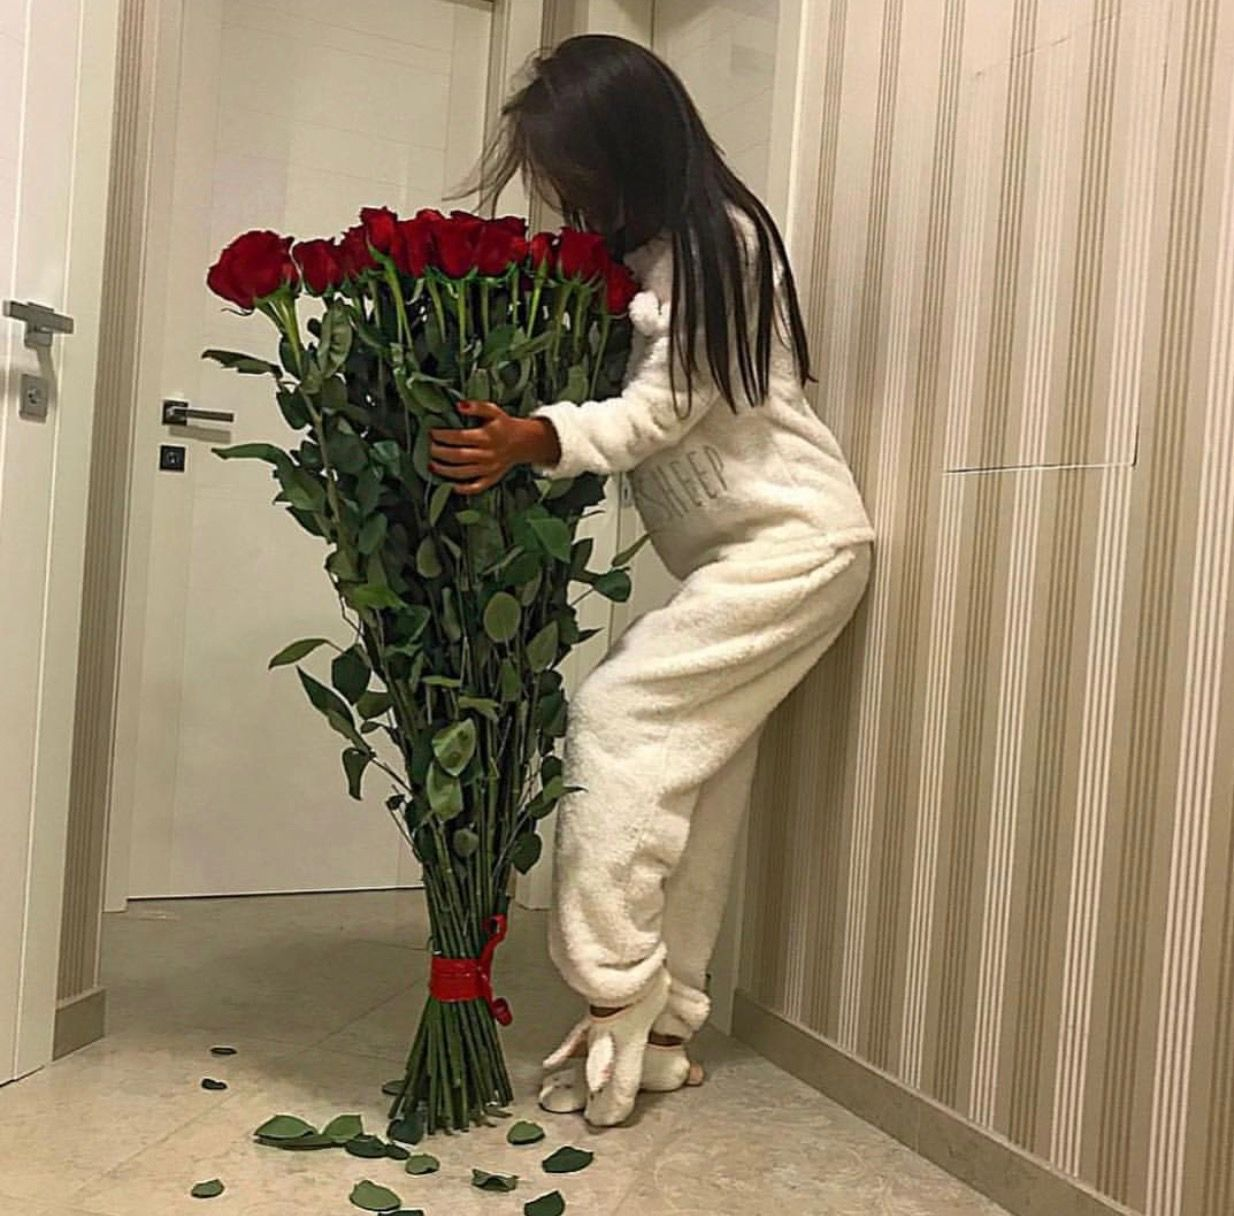 Brunette In A White Onsie And Her Five Foot Roses Couple Goals Red Roses Flower Power Fashion Red Roses